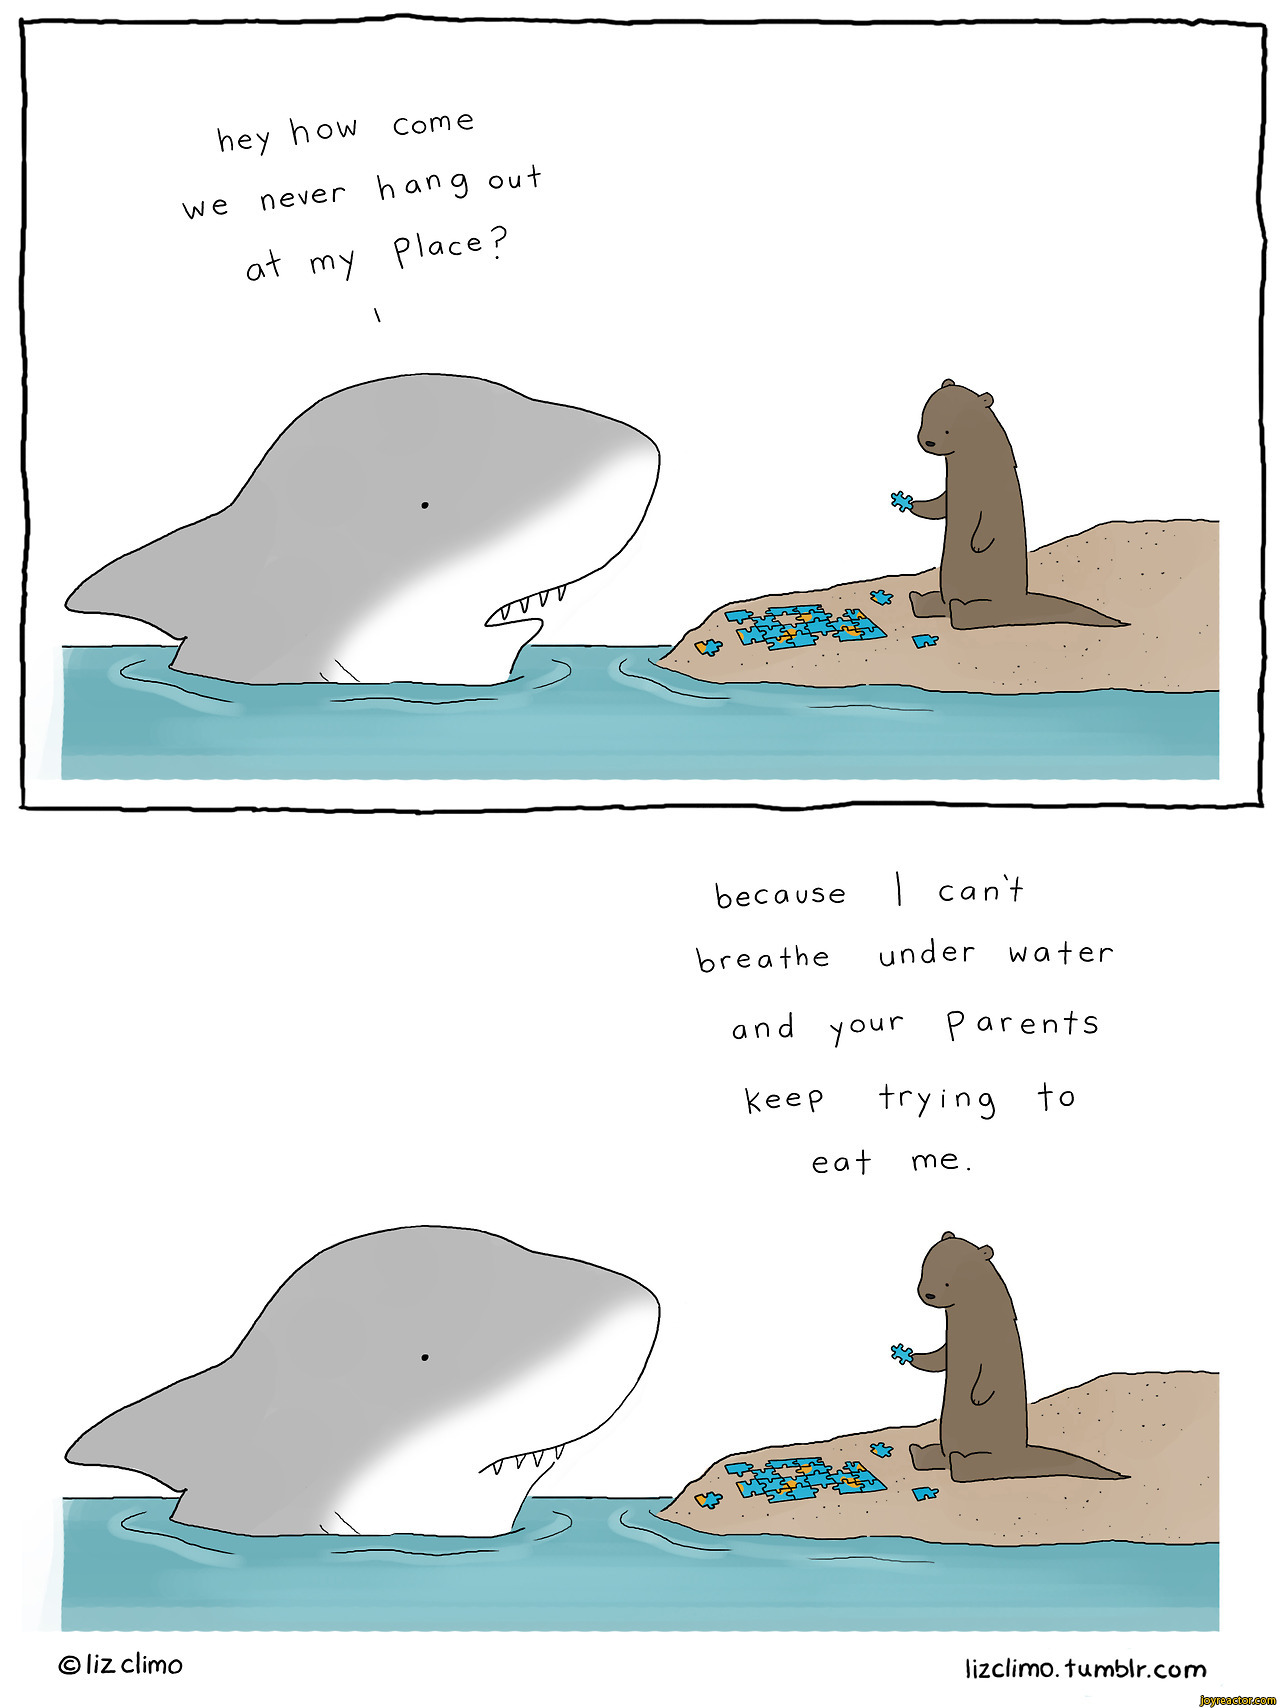 lizclimo-comics-shark-friends-1422674.jpeg